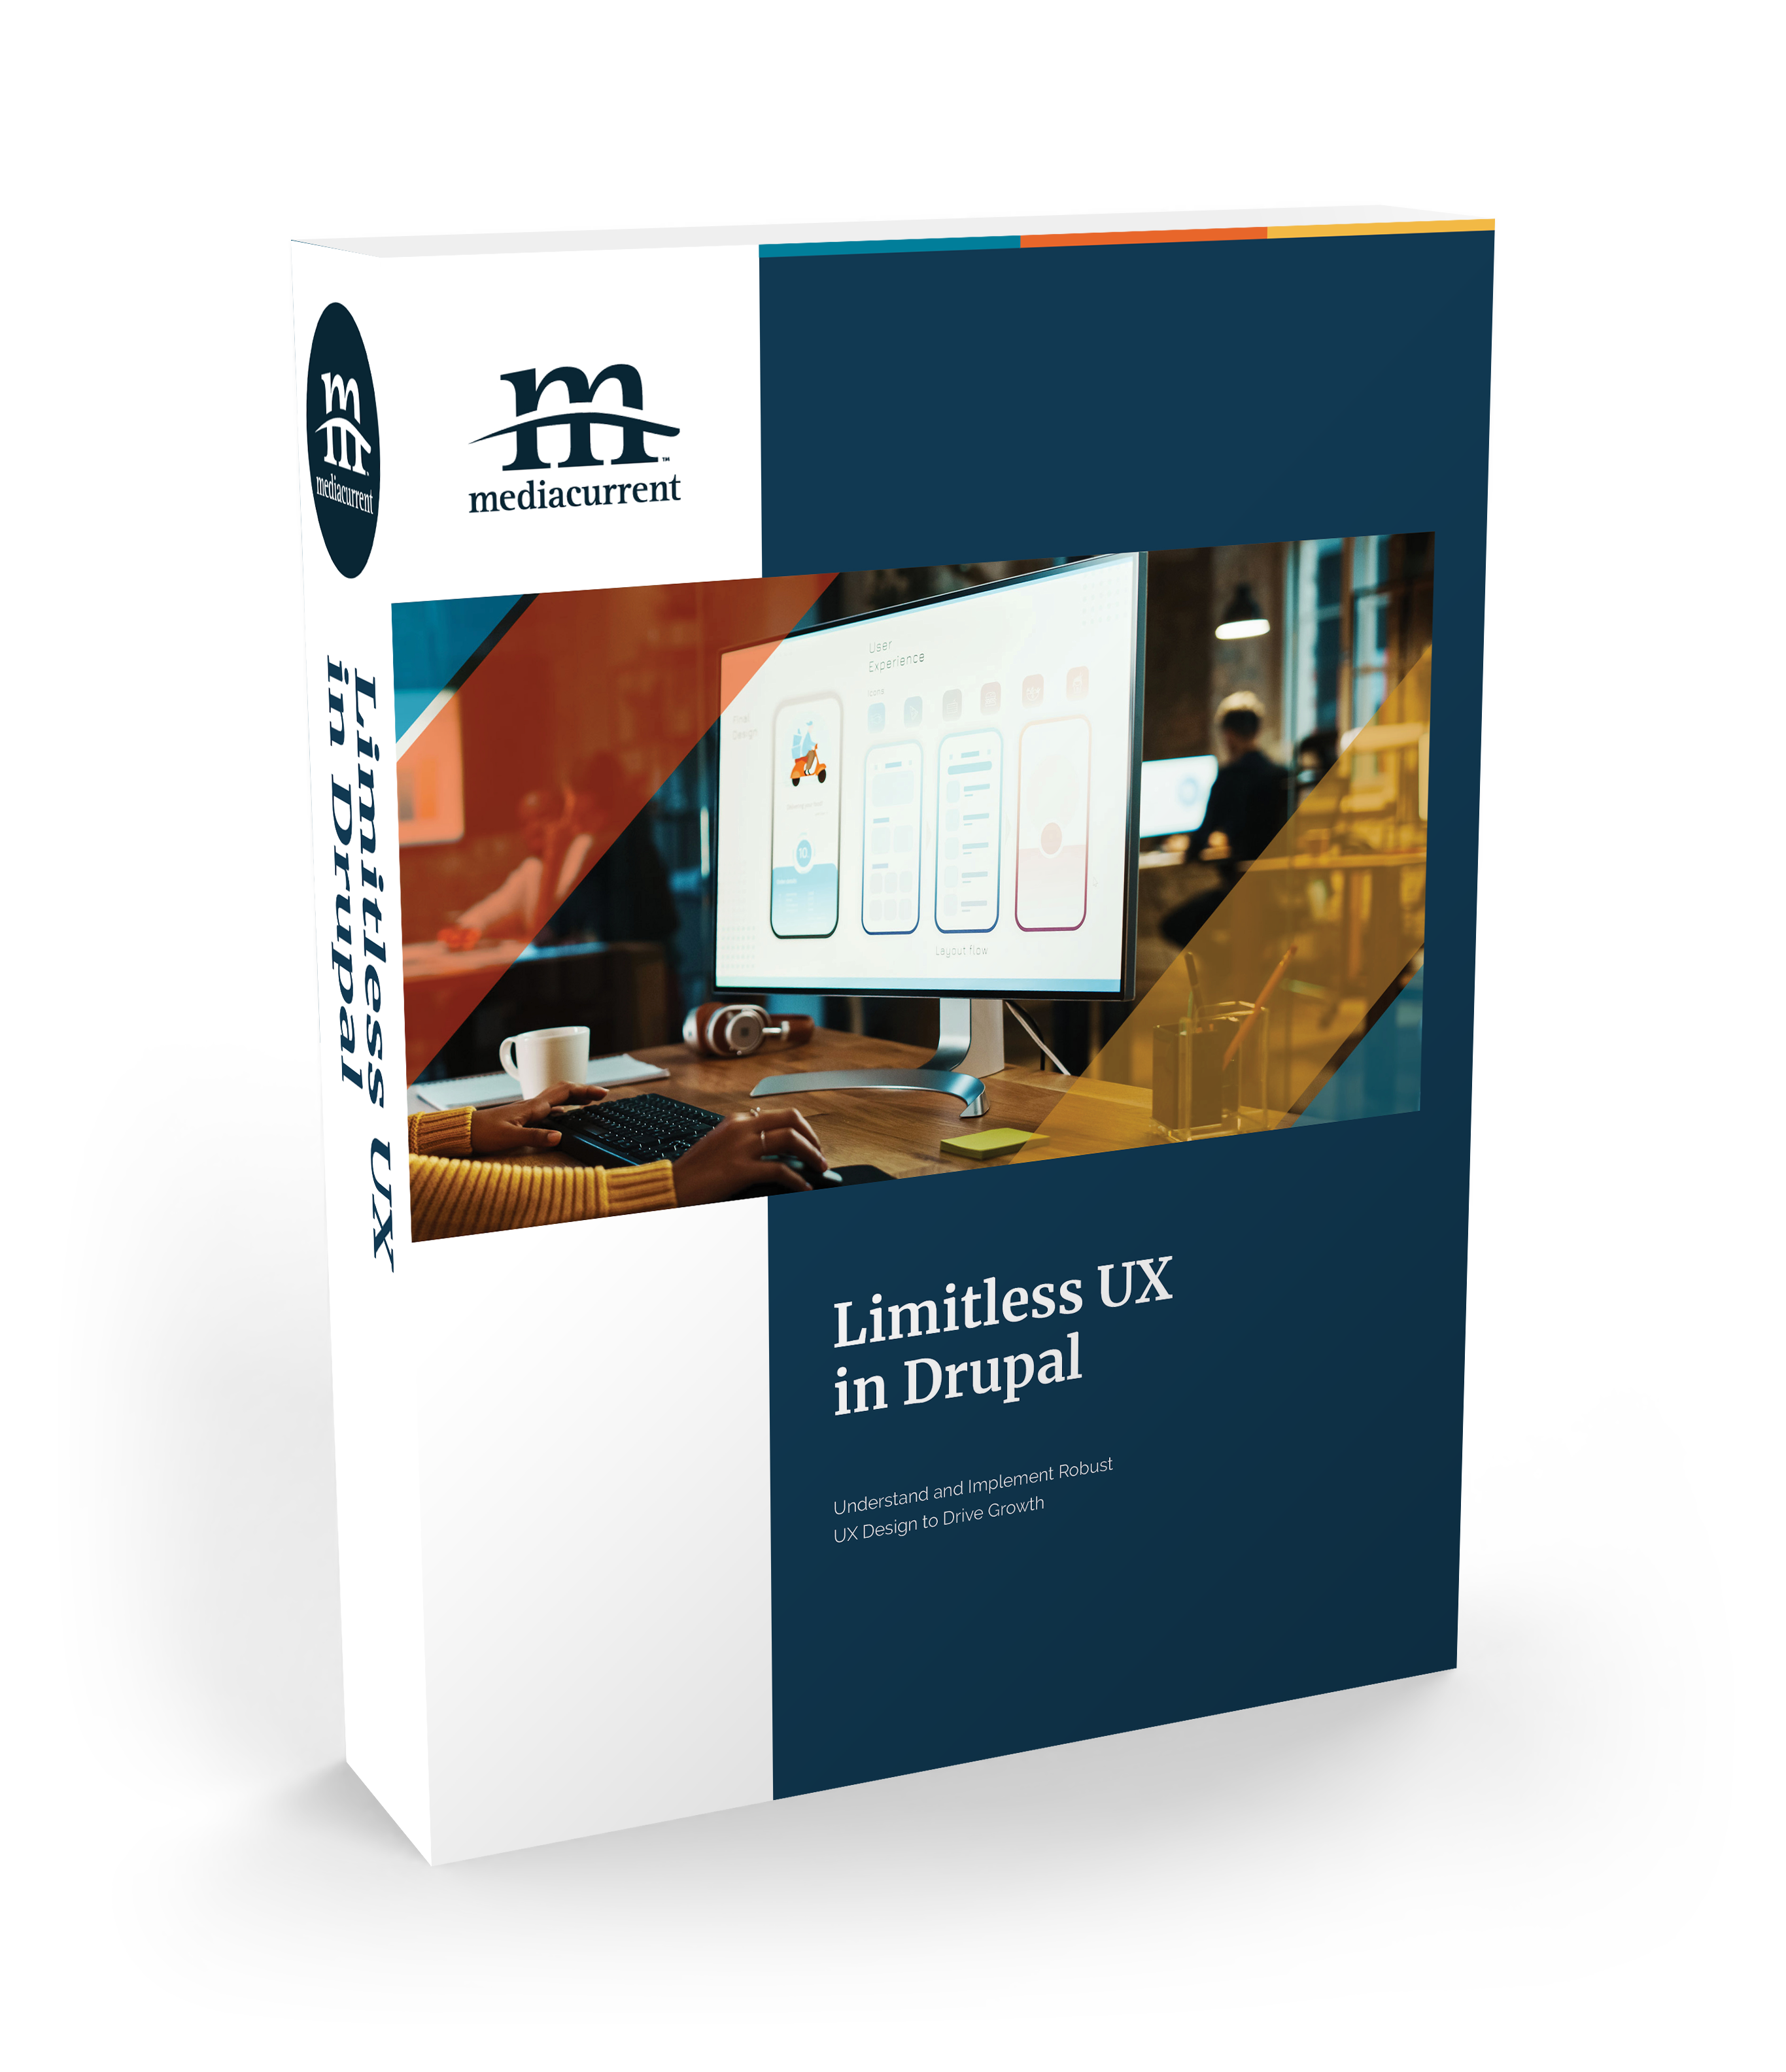 limitless ux in drupal ebook cover